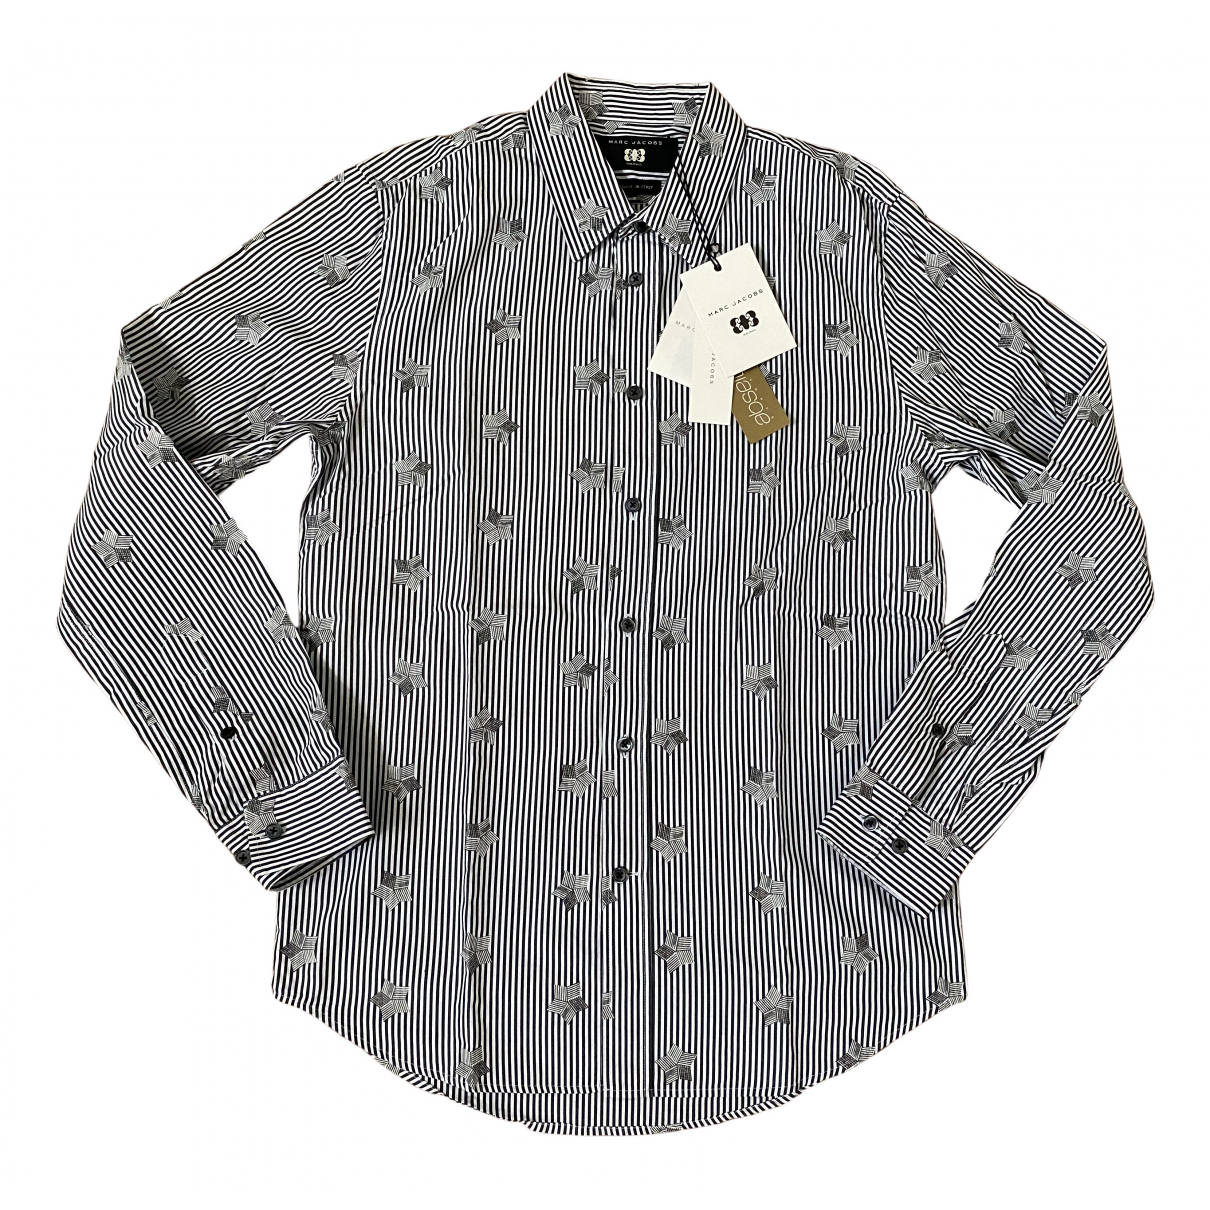 Marc Jacobs \N Anthracite Cotton Shirts for Men M International